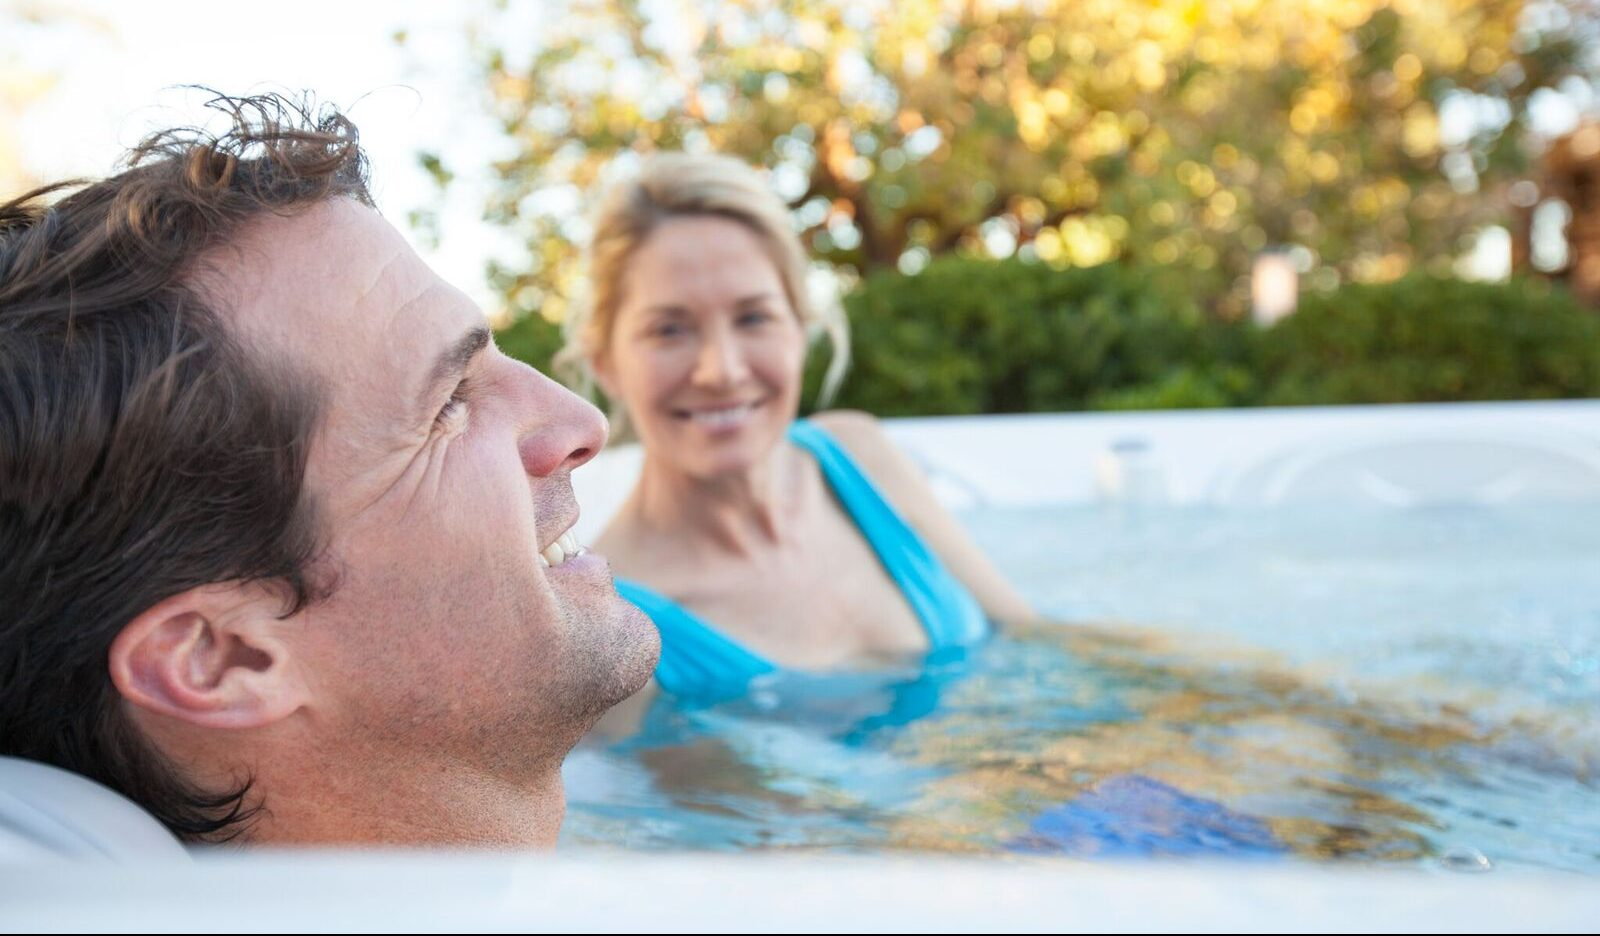 4 Ways Hot Tubs Make You a Healthier Person